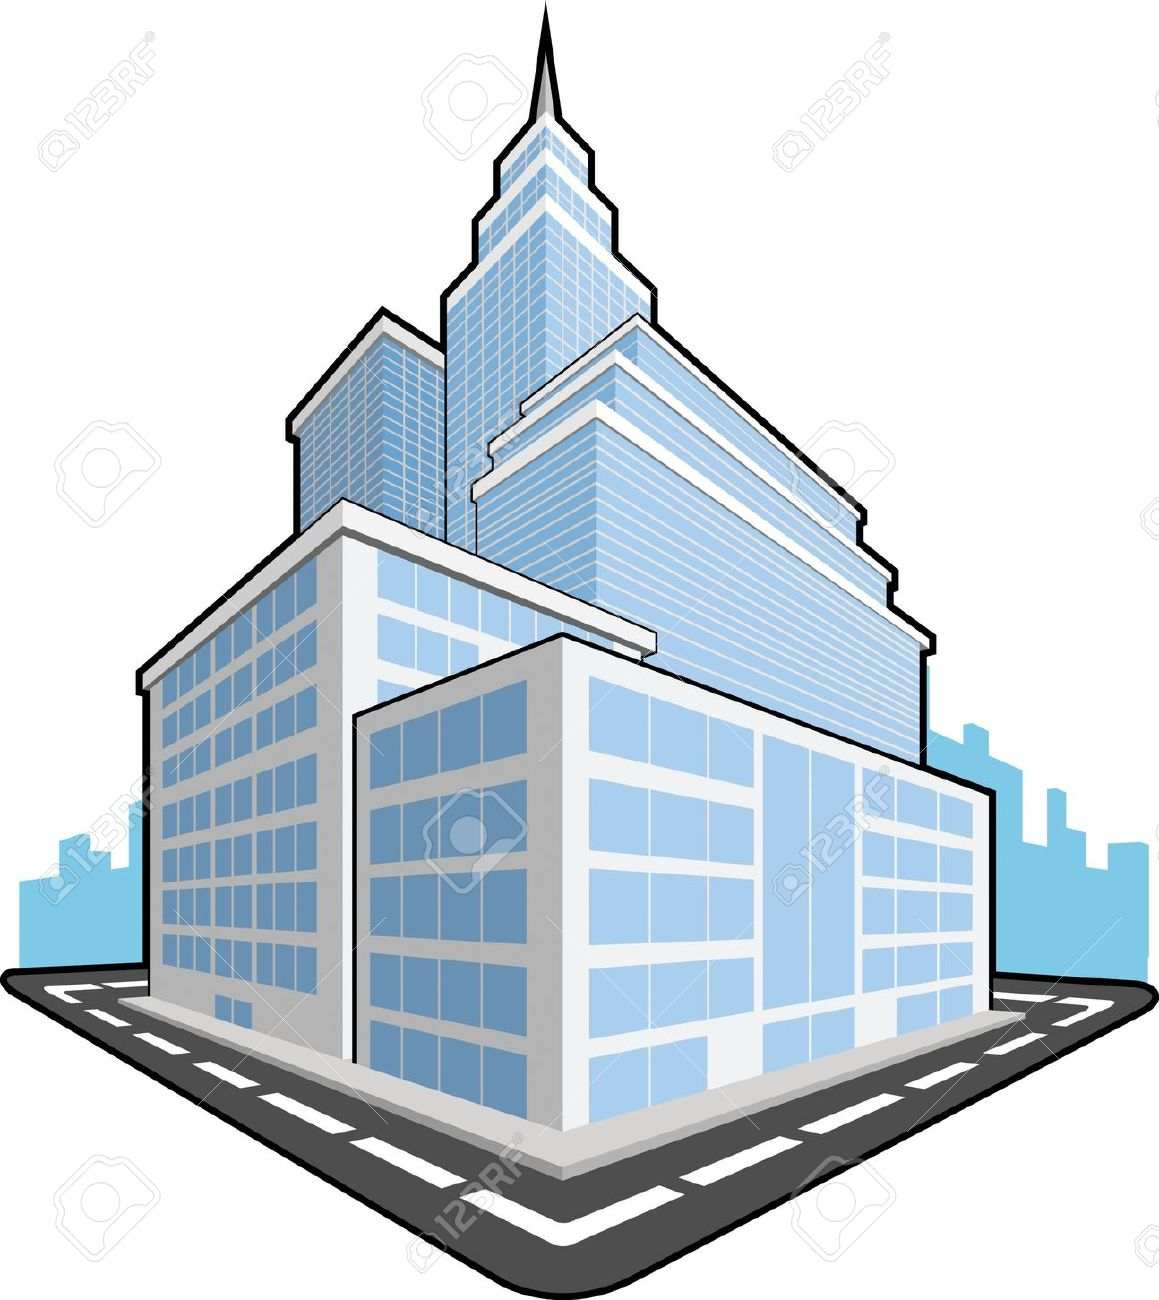 Corporation Building Clipart.